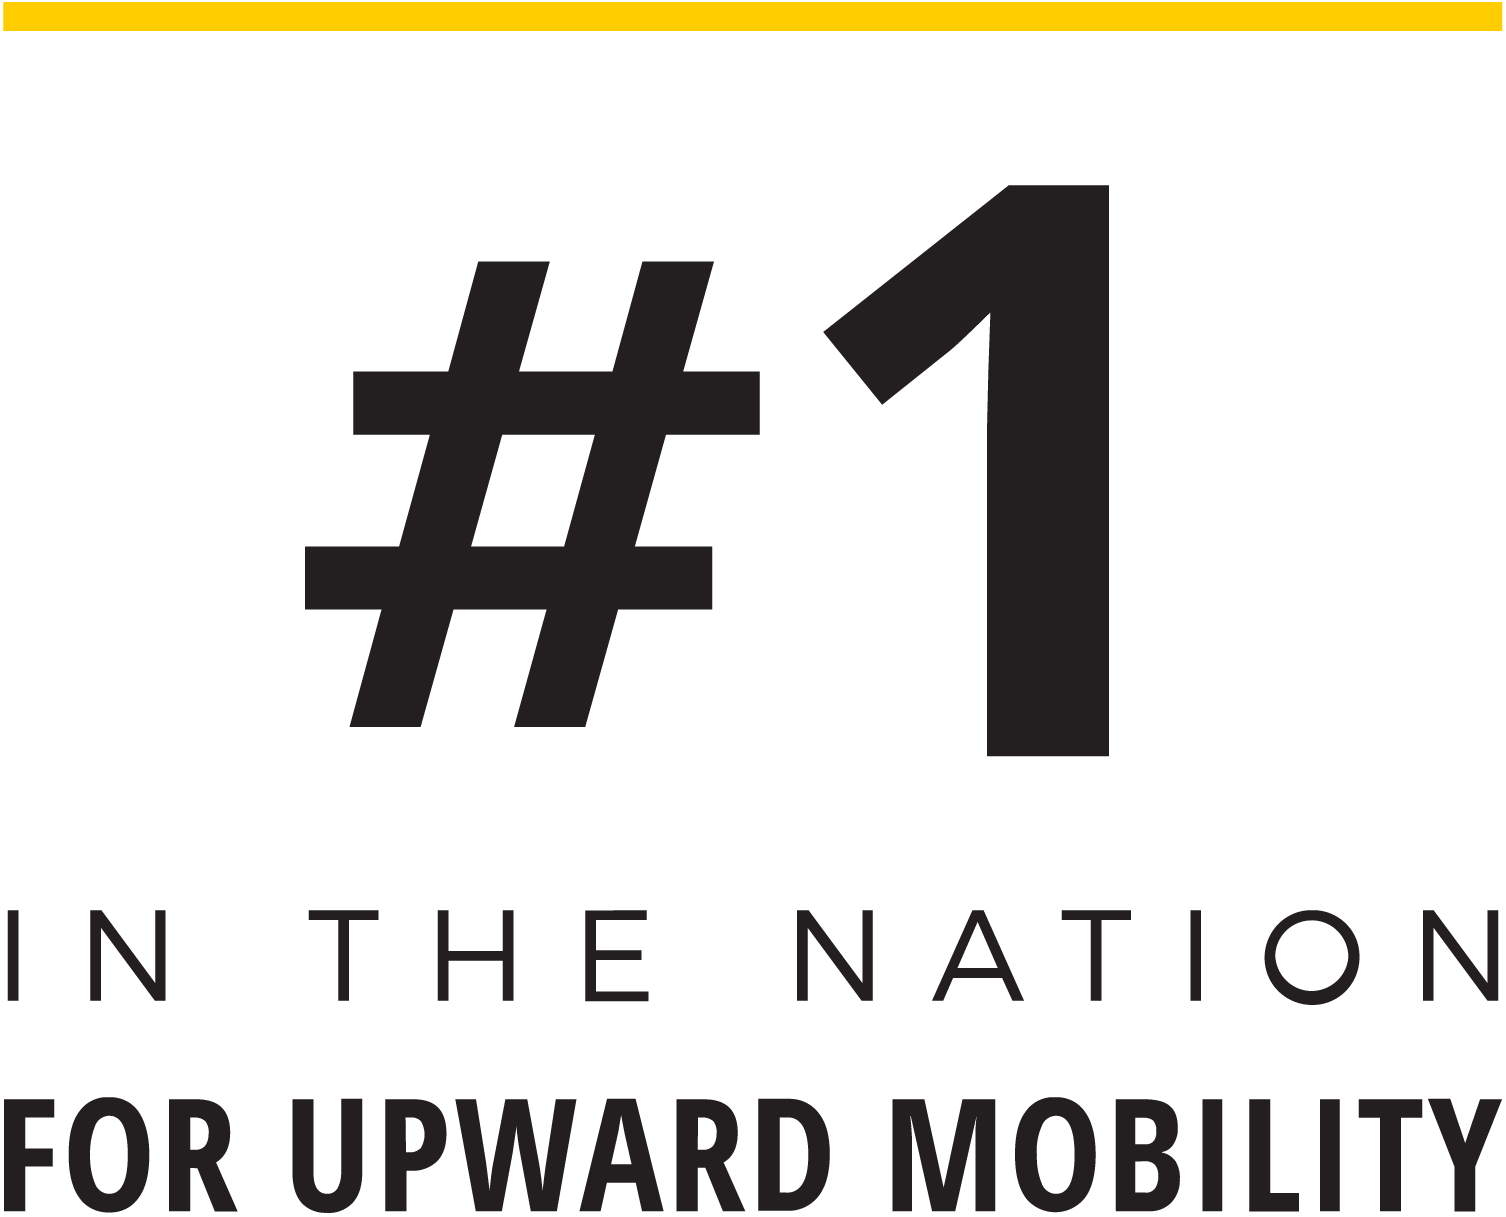 Number one in the nation for upward mobility